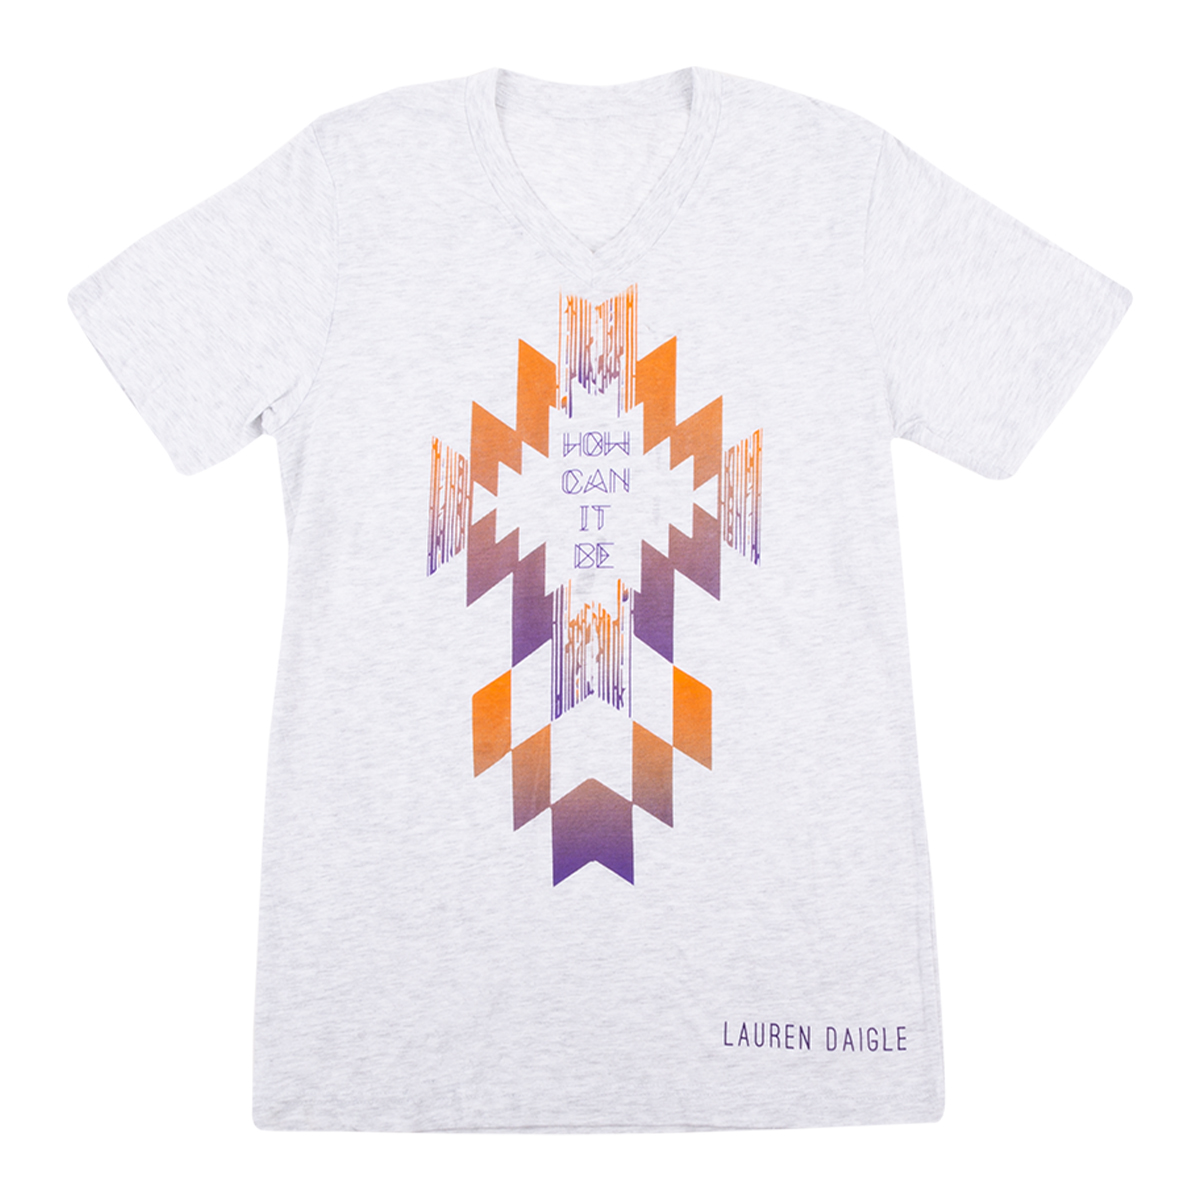 How Can It Be Aztec T-Shirt